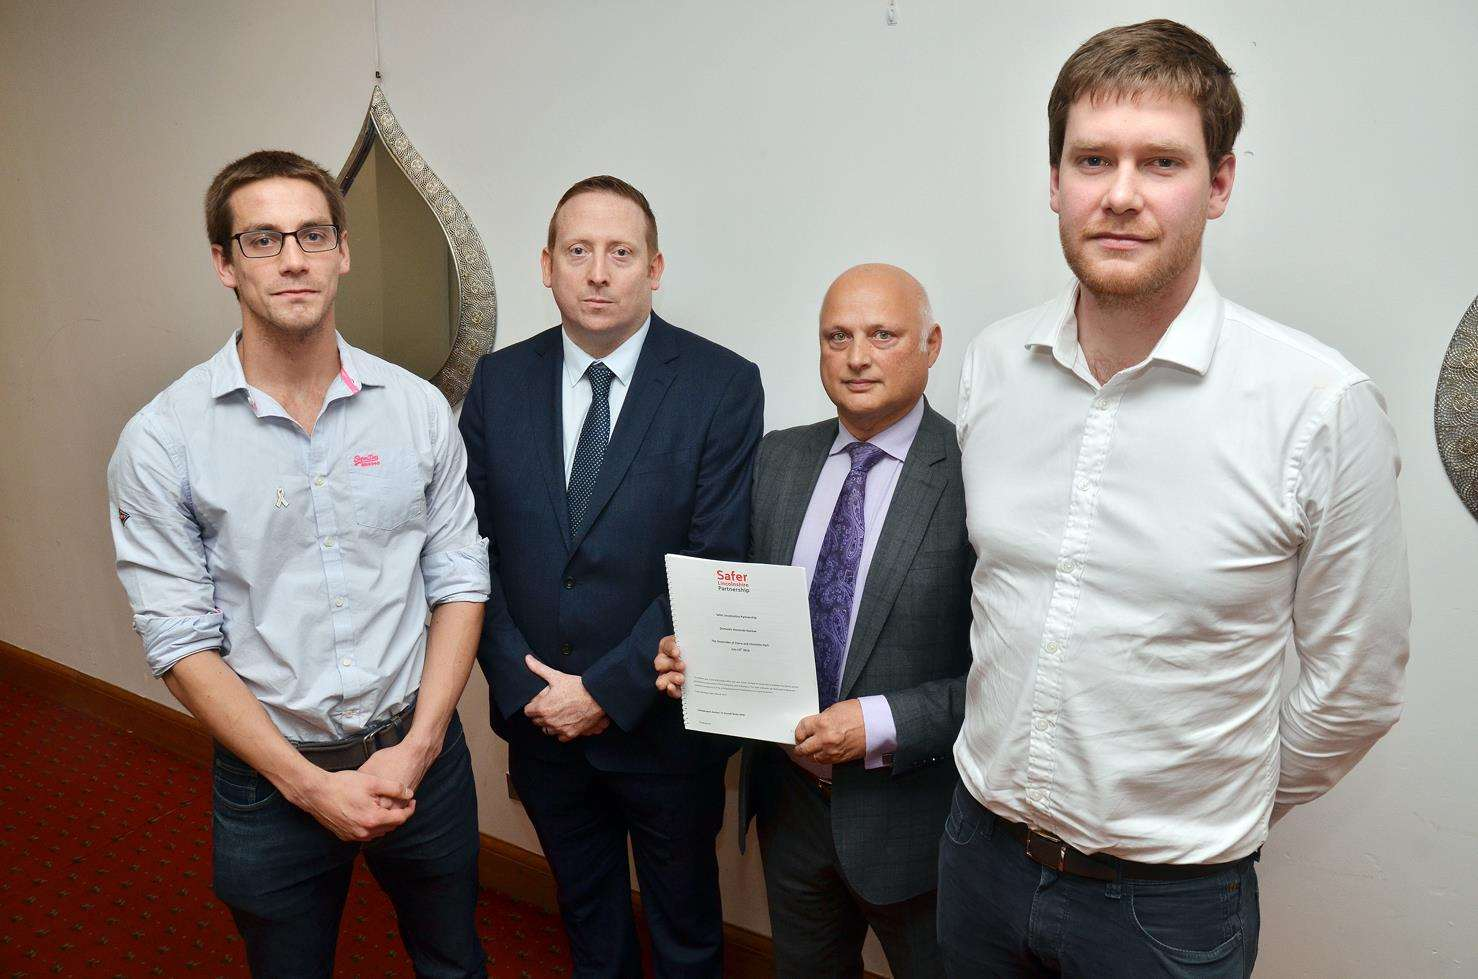 Ryan Hart, Detective Chief Superintendent Chris Davison, author Dr Russell Wate and Luke Hart were in Grantham on Thursday for the publication of the Domestic Homicide Review into the deaths of Claire and Charlotte Hart.